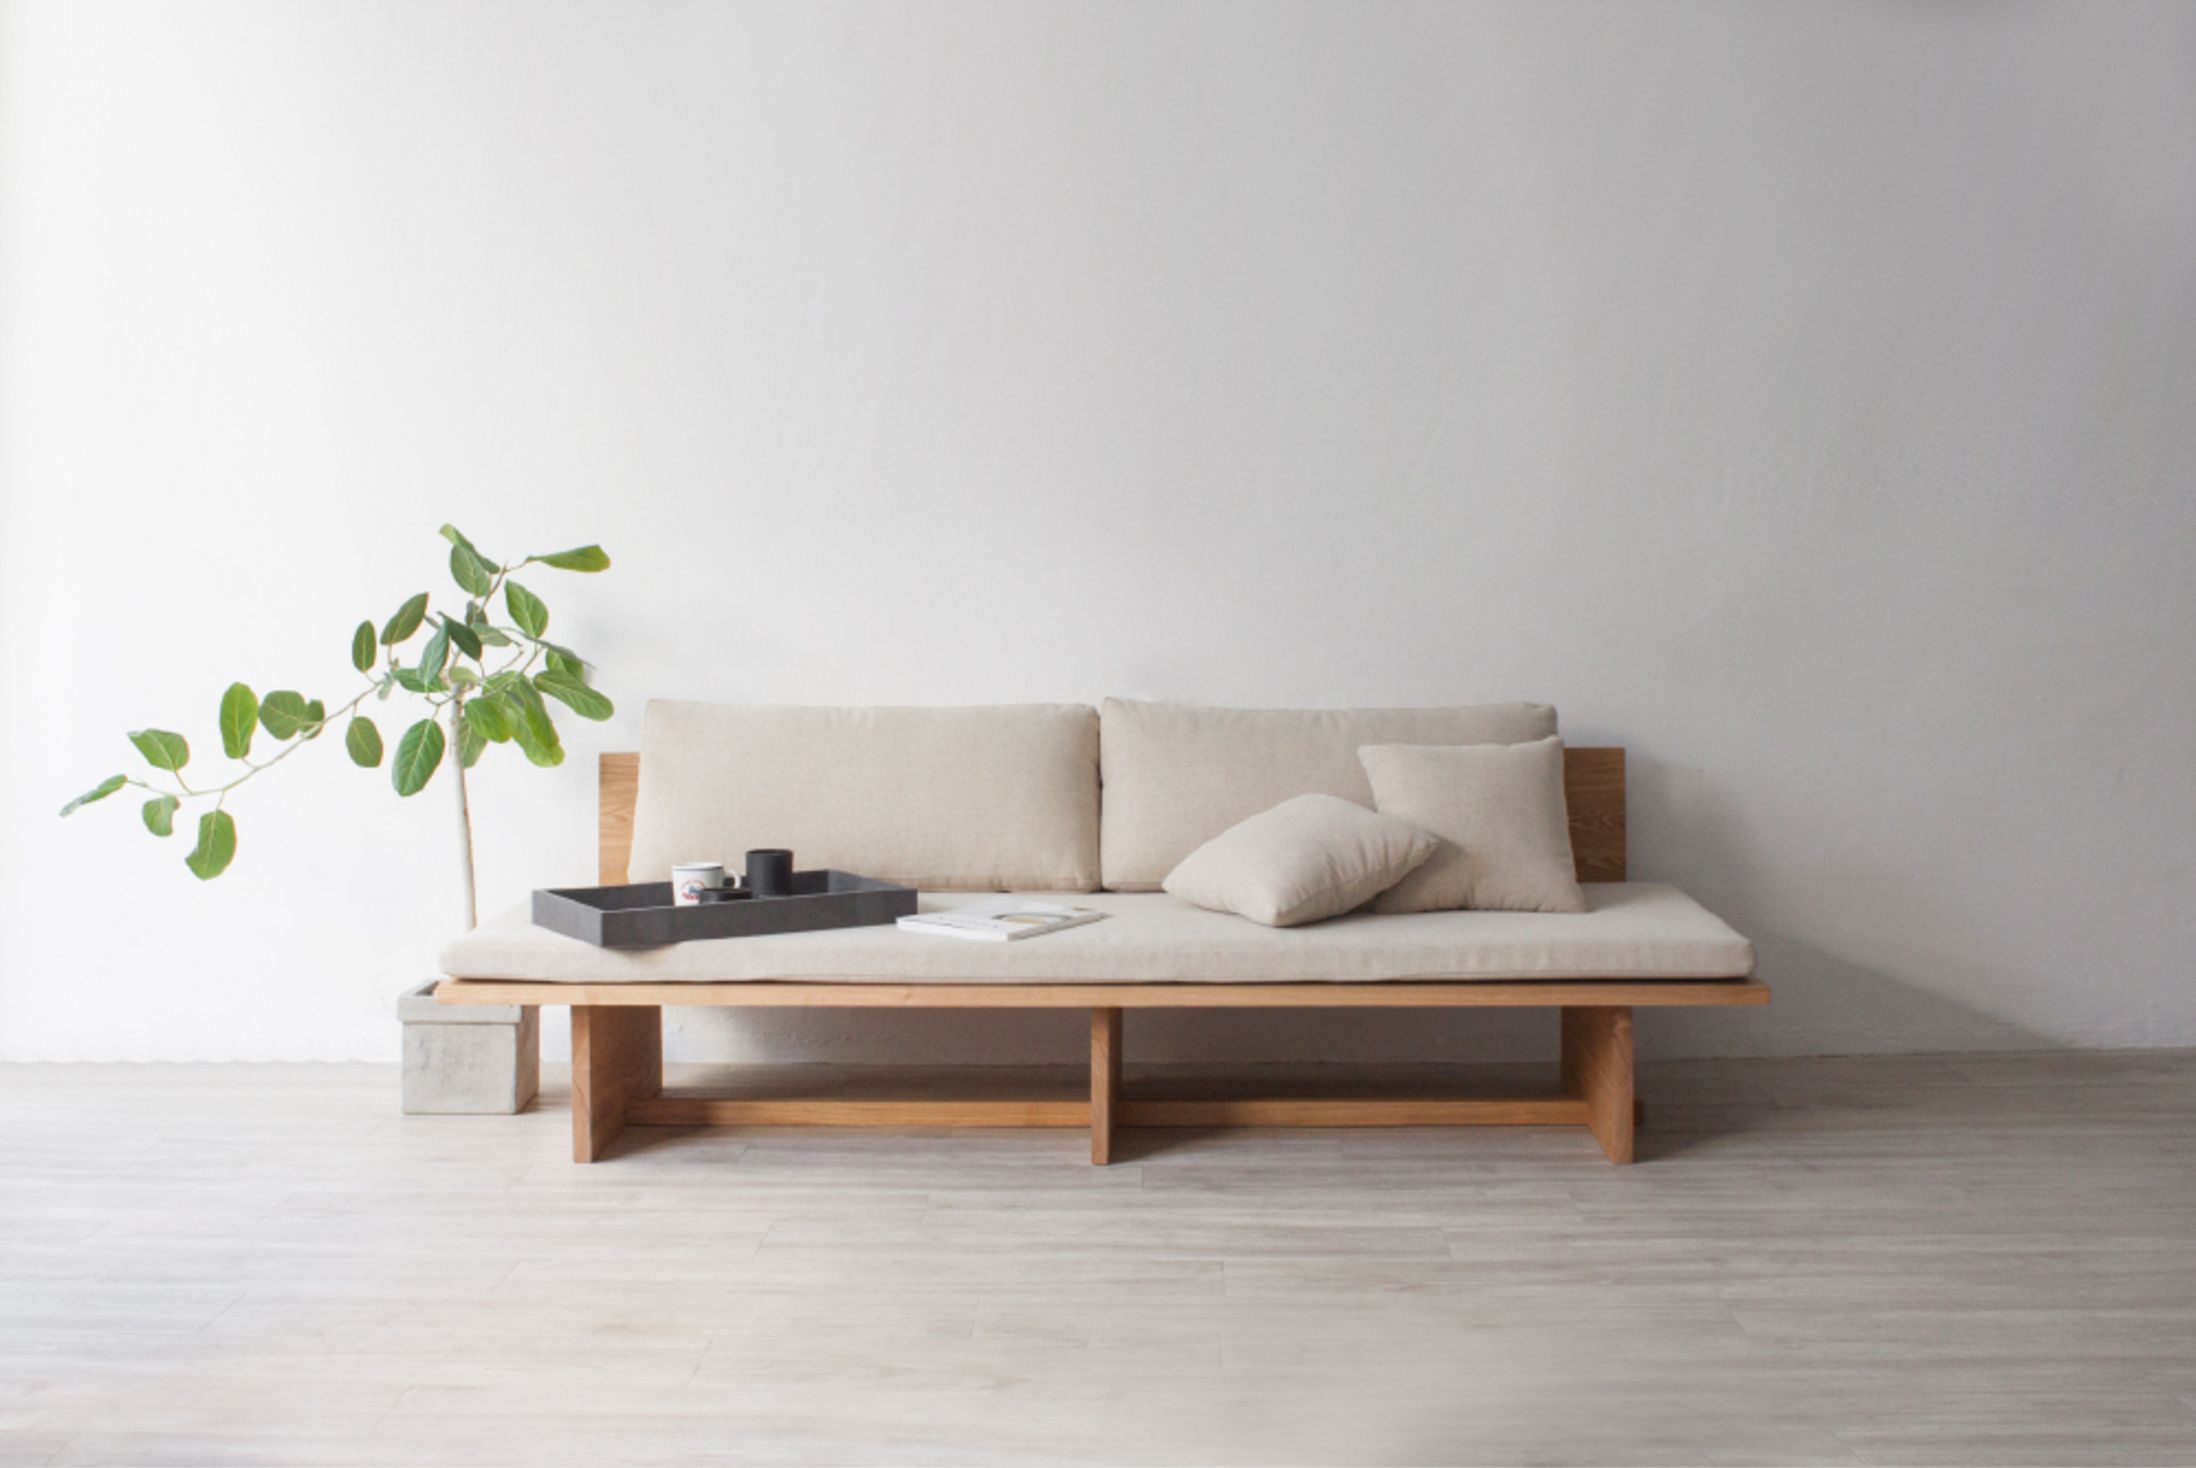 Minimal Sofa Design Chartreuse Blank In 2019 Interior Inspiration Furniture Is A Created By South Korea Based Designer Hyung Suk Cho The Which Made Characterized Clean Lines And